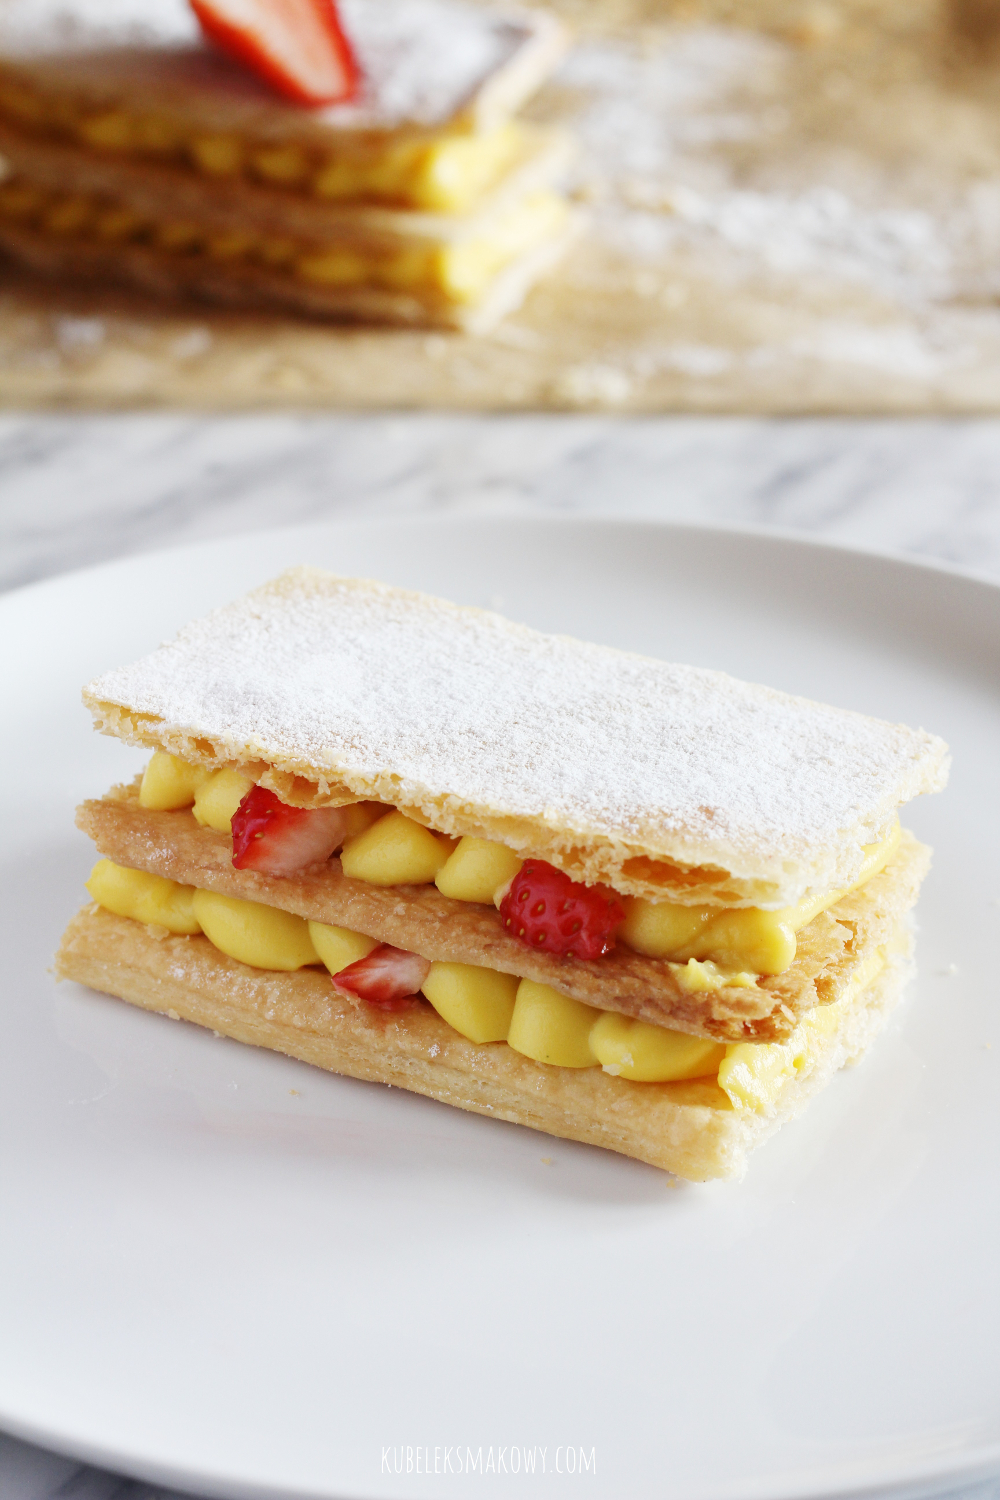 mille feuilleprzepis